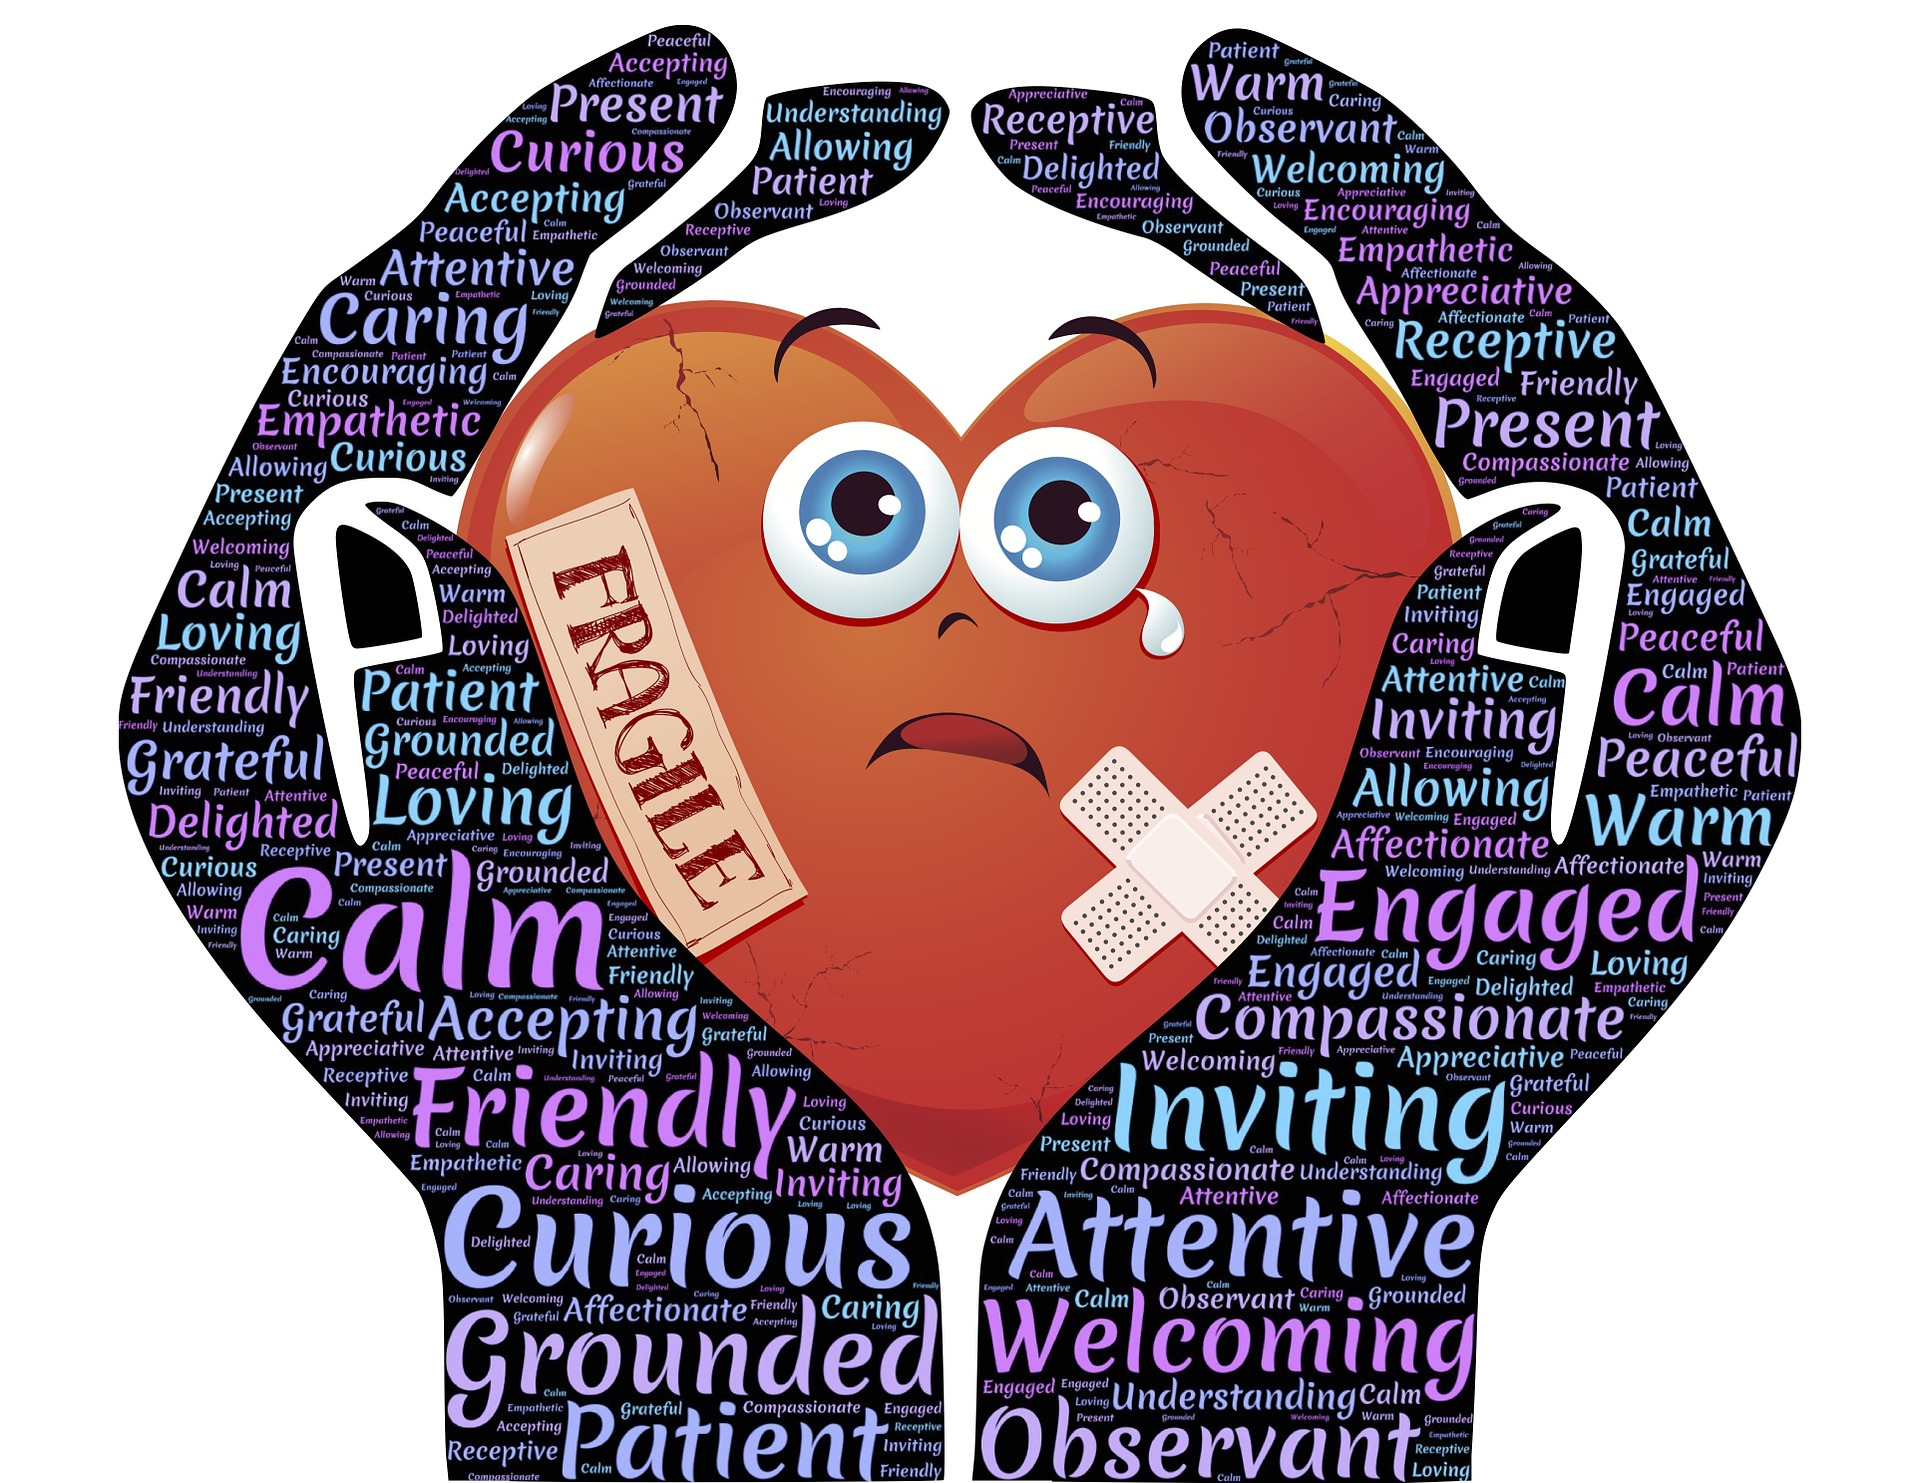 Caregiver hands. Caring for a fragile person can be very challenging. We need caring for caregivers now. We have to remember that caring for caregivers during COVID-19 is so important so they can stay strong and compassionate during stressful times.